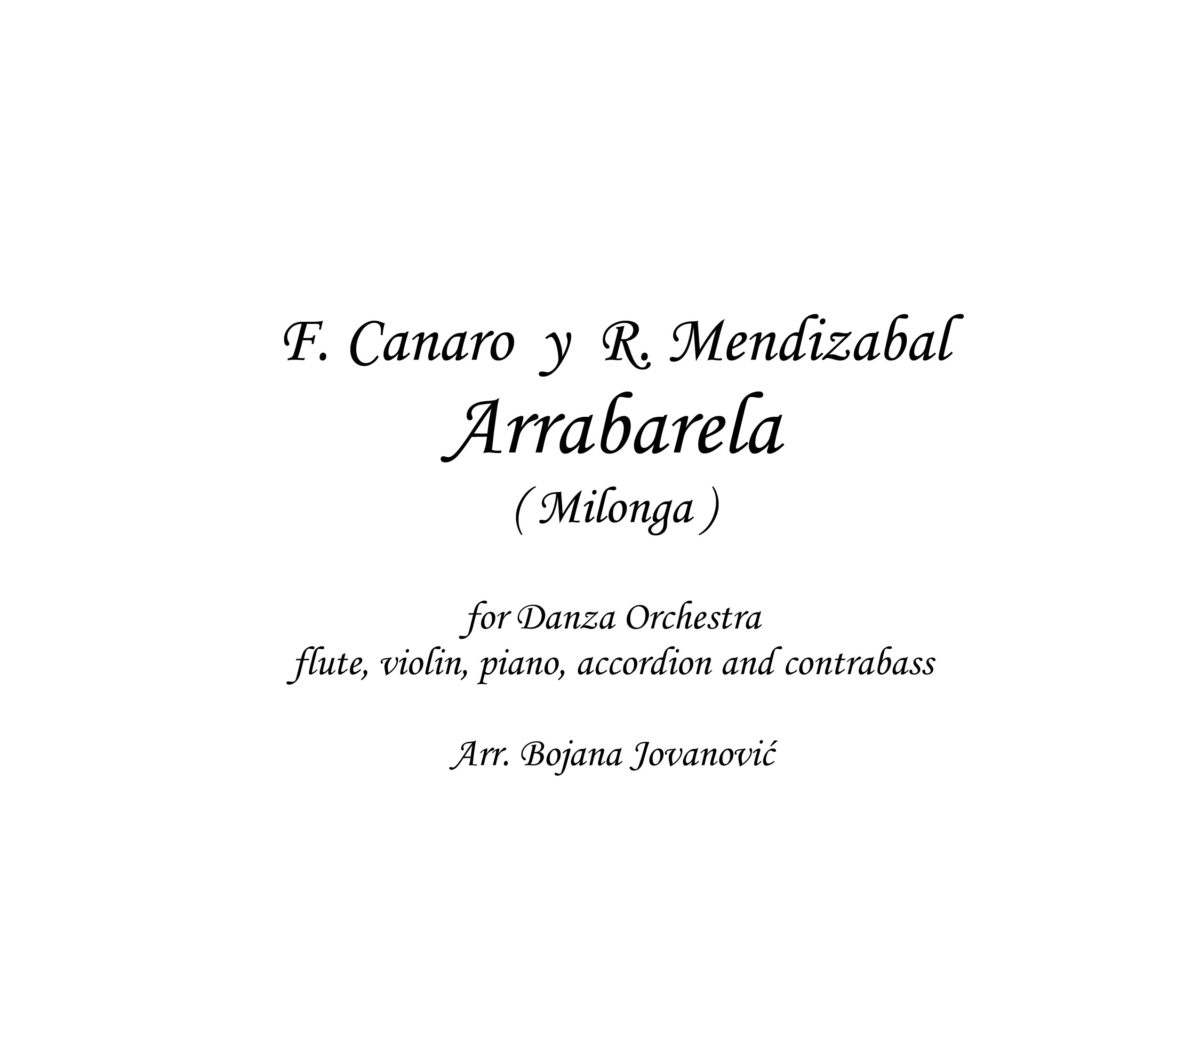 Arrabarela (Francisco Canaro) - Sheet Music